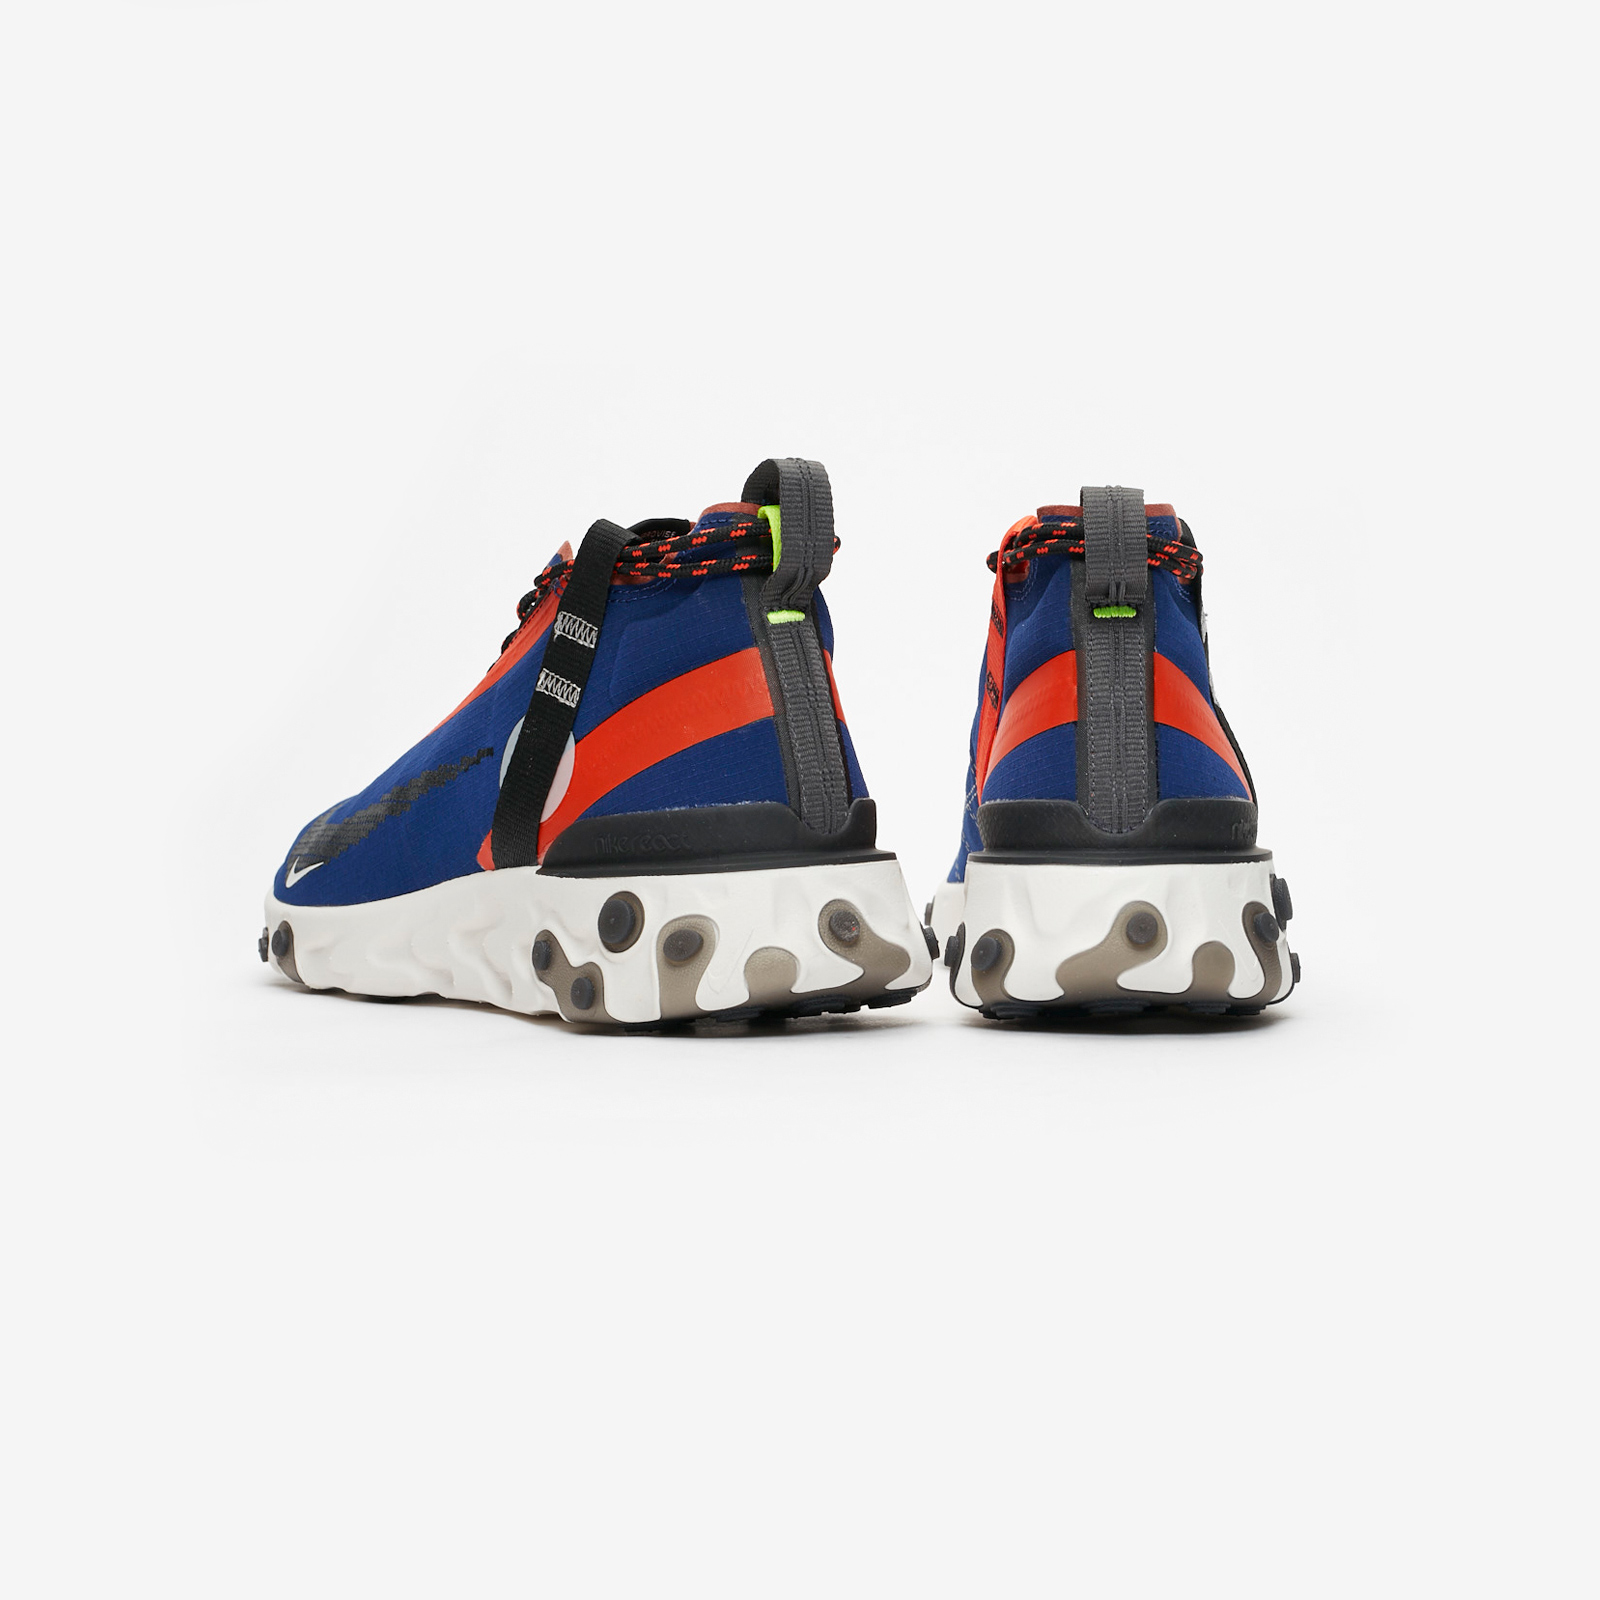 c828d341c04a3 Nike React Runner Mid WR ISPA - At3143-400 - Sneakersnstuff ...